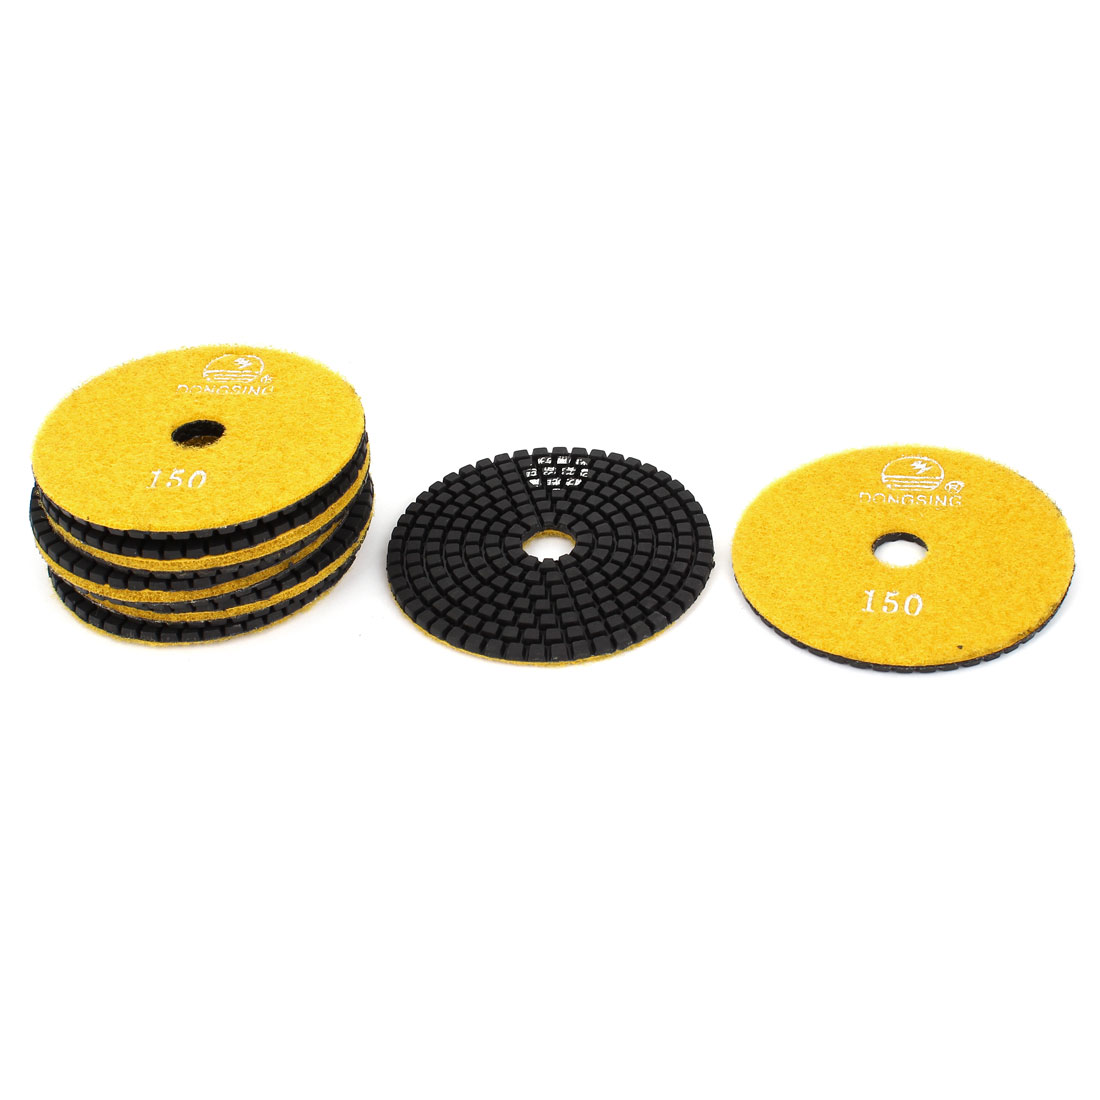 "10pcs 150 Grit 4"" Dia Wet Diamond Polishing Pads Yellow for Granite Marble"